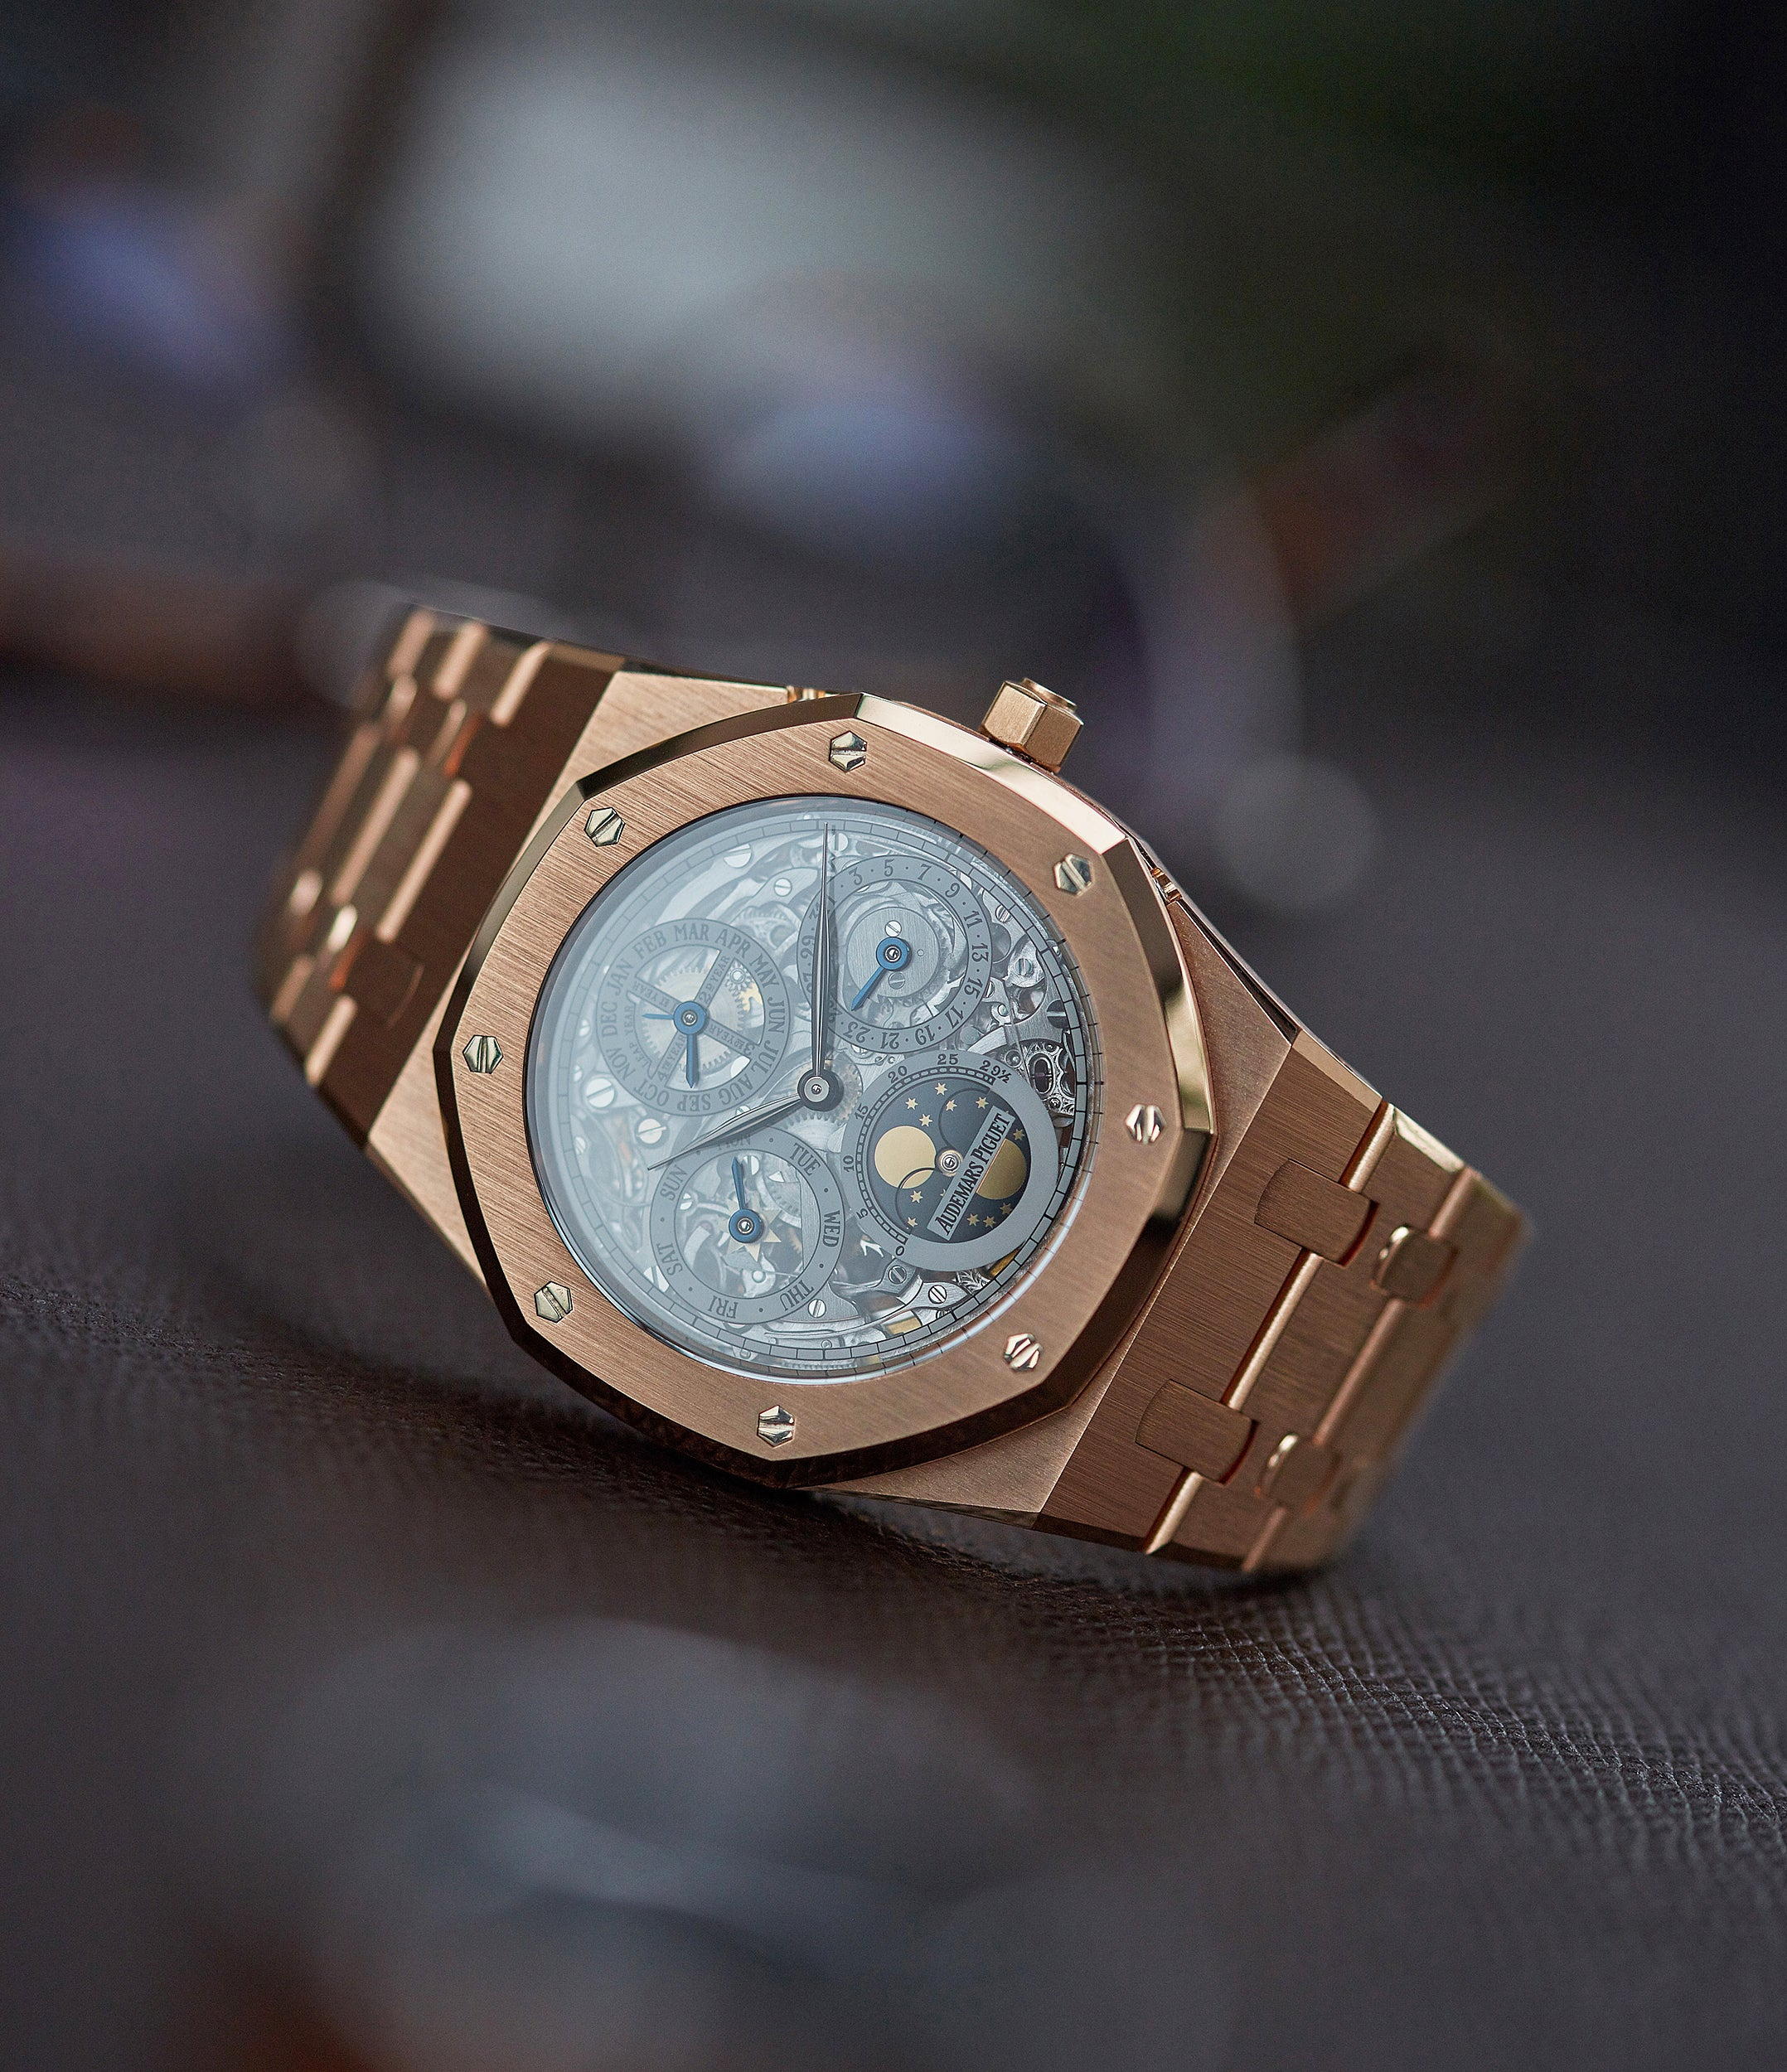 Quantieme Perpetual Calendar Audemars Piguet Royal Oak 25829OR rose gold skeletonised pre-owned sport watch for sale online at A Collected Man London UK specialist of rare watches